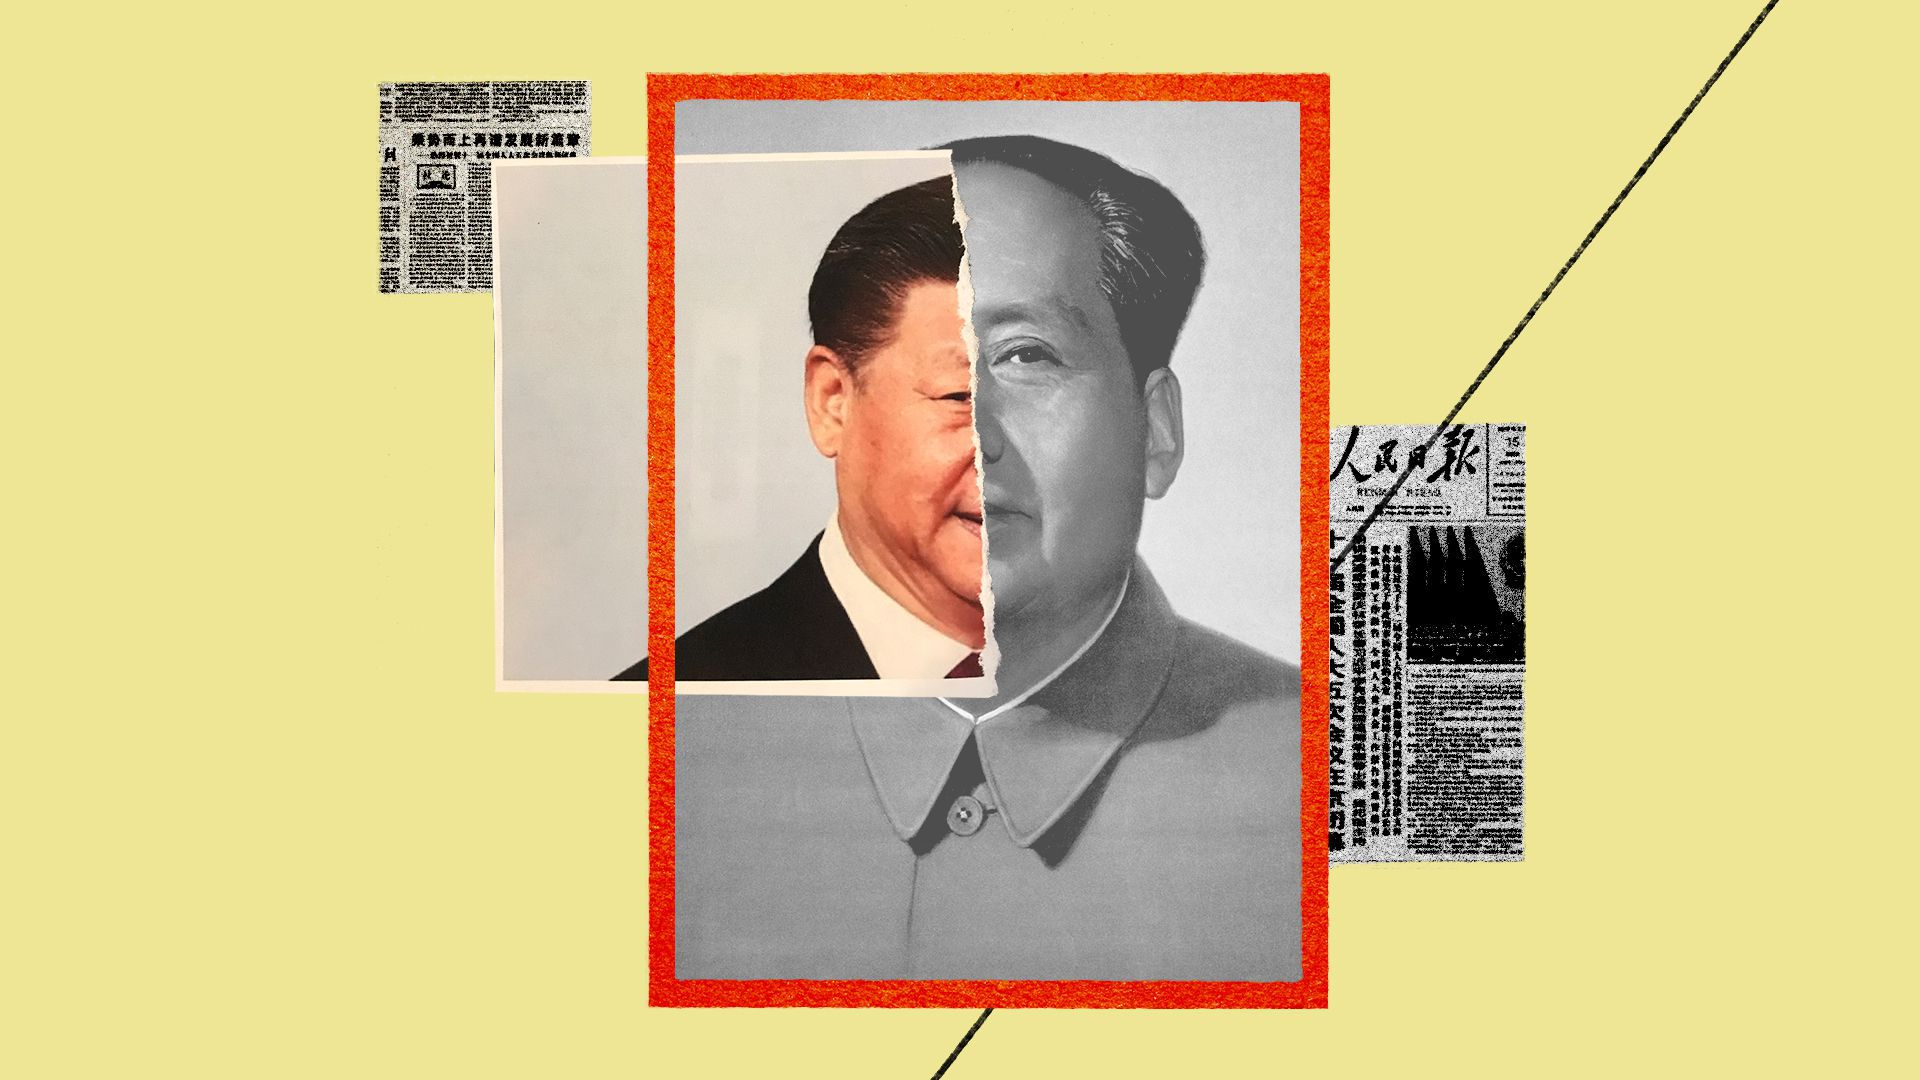 Illustration of Mao and Xi photos merged in a collage together